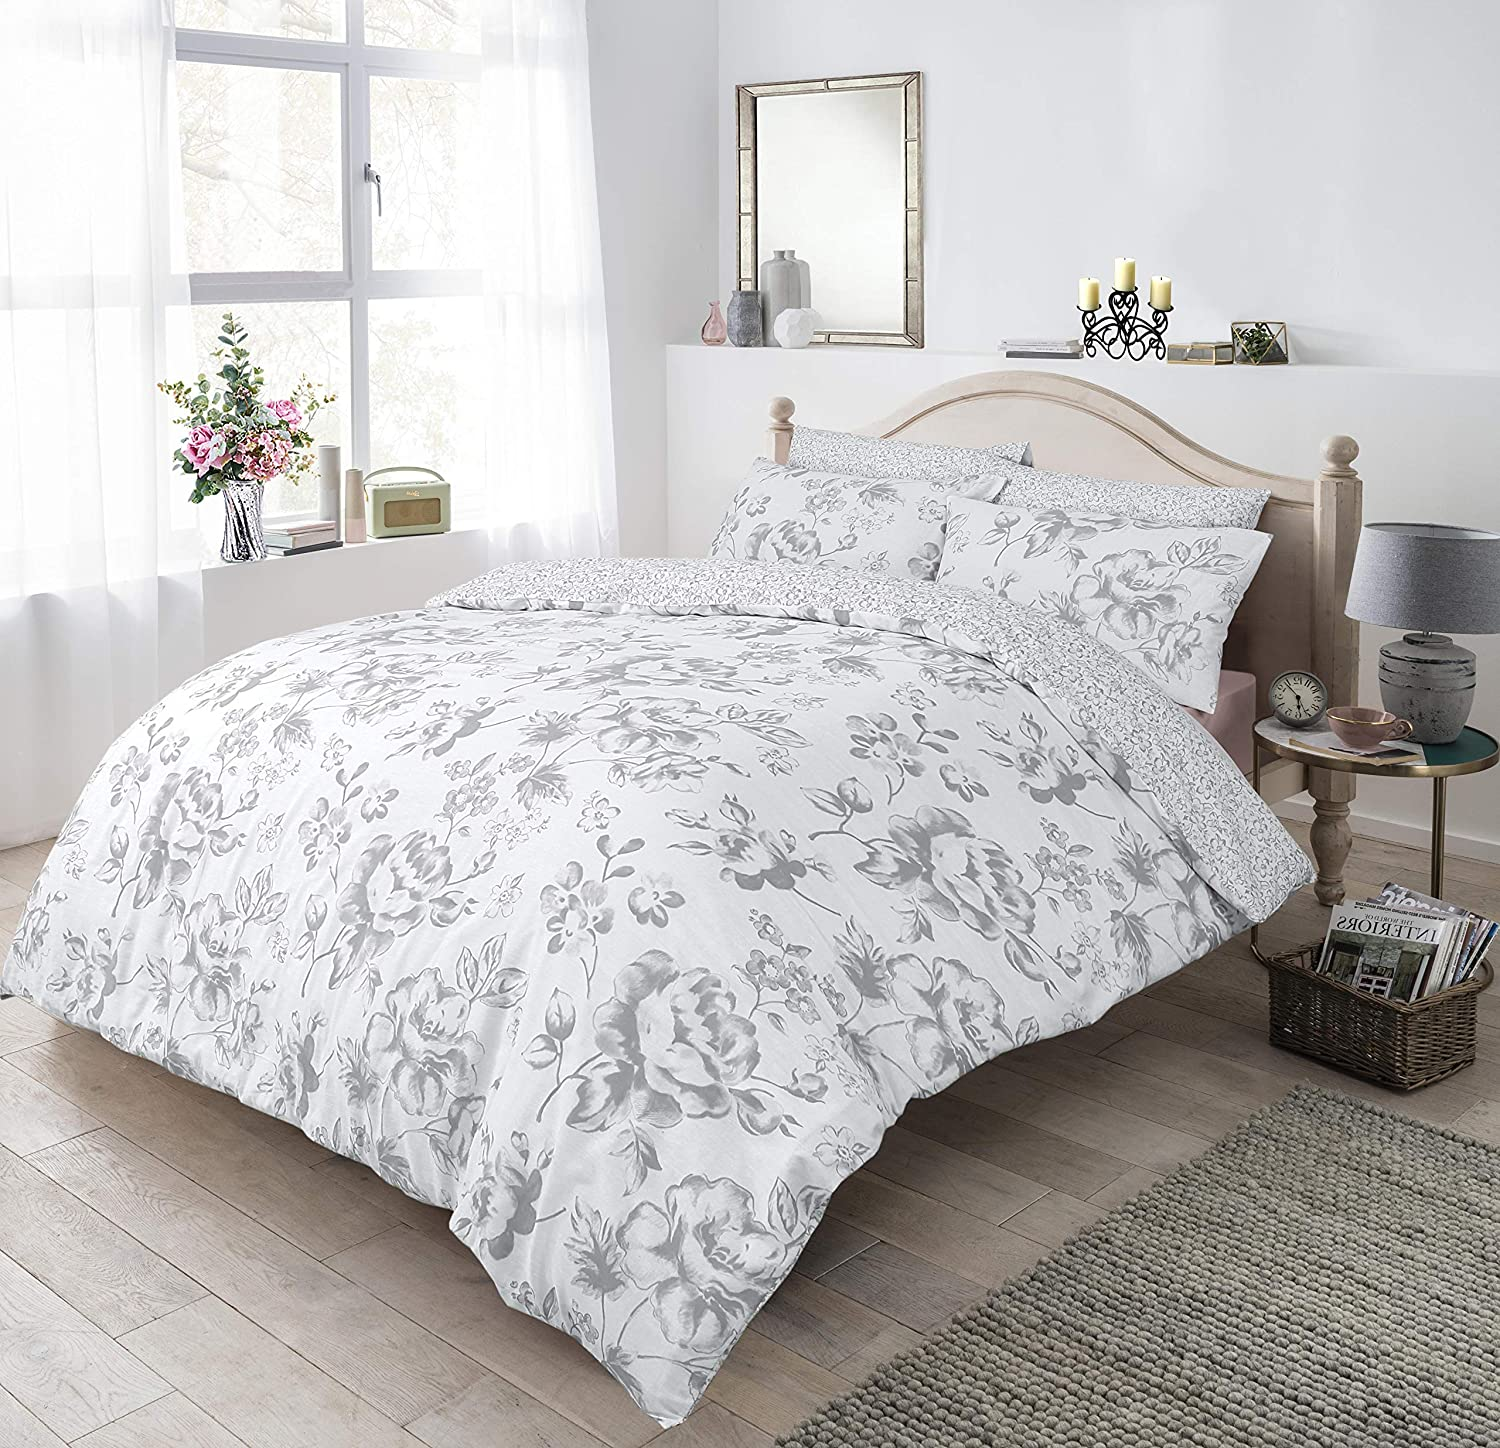 Luxury Sleep Down Blossom Duvet Cover Set Pillow Case Single Size Bedding